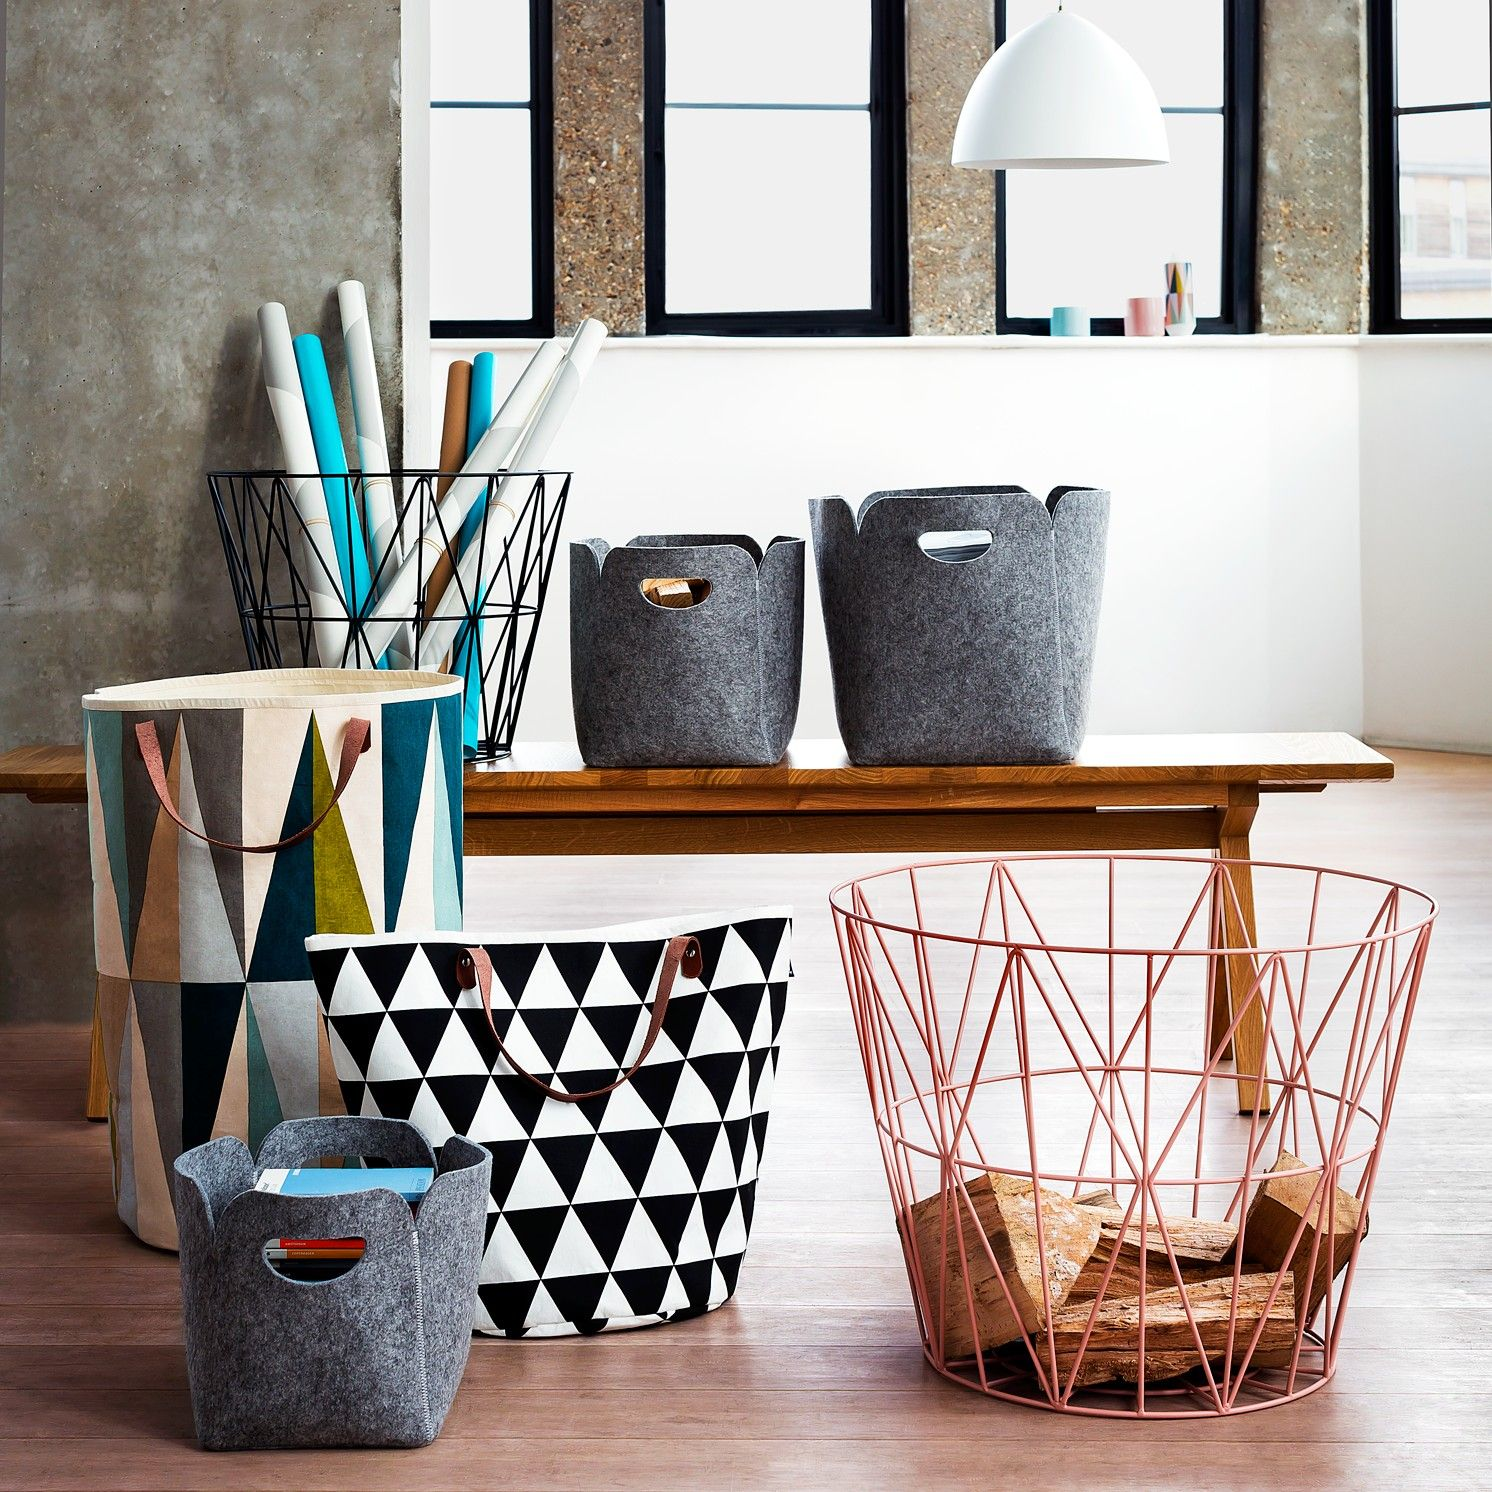 Ferm LIVING Wire Storage Basket  Medium  Roseferm LIVING Wire Storage Basket  Medium  Rose   Home   Decor  . Ferm Living Shelf Brackets. Home Design Ideas